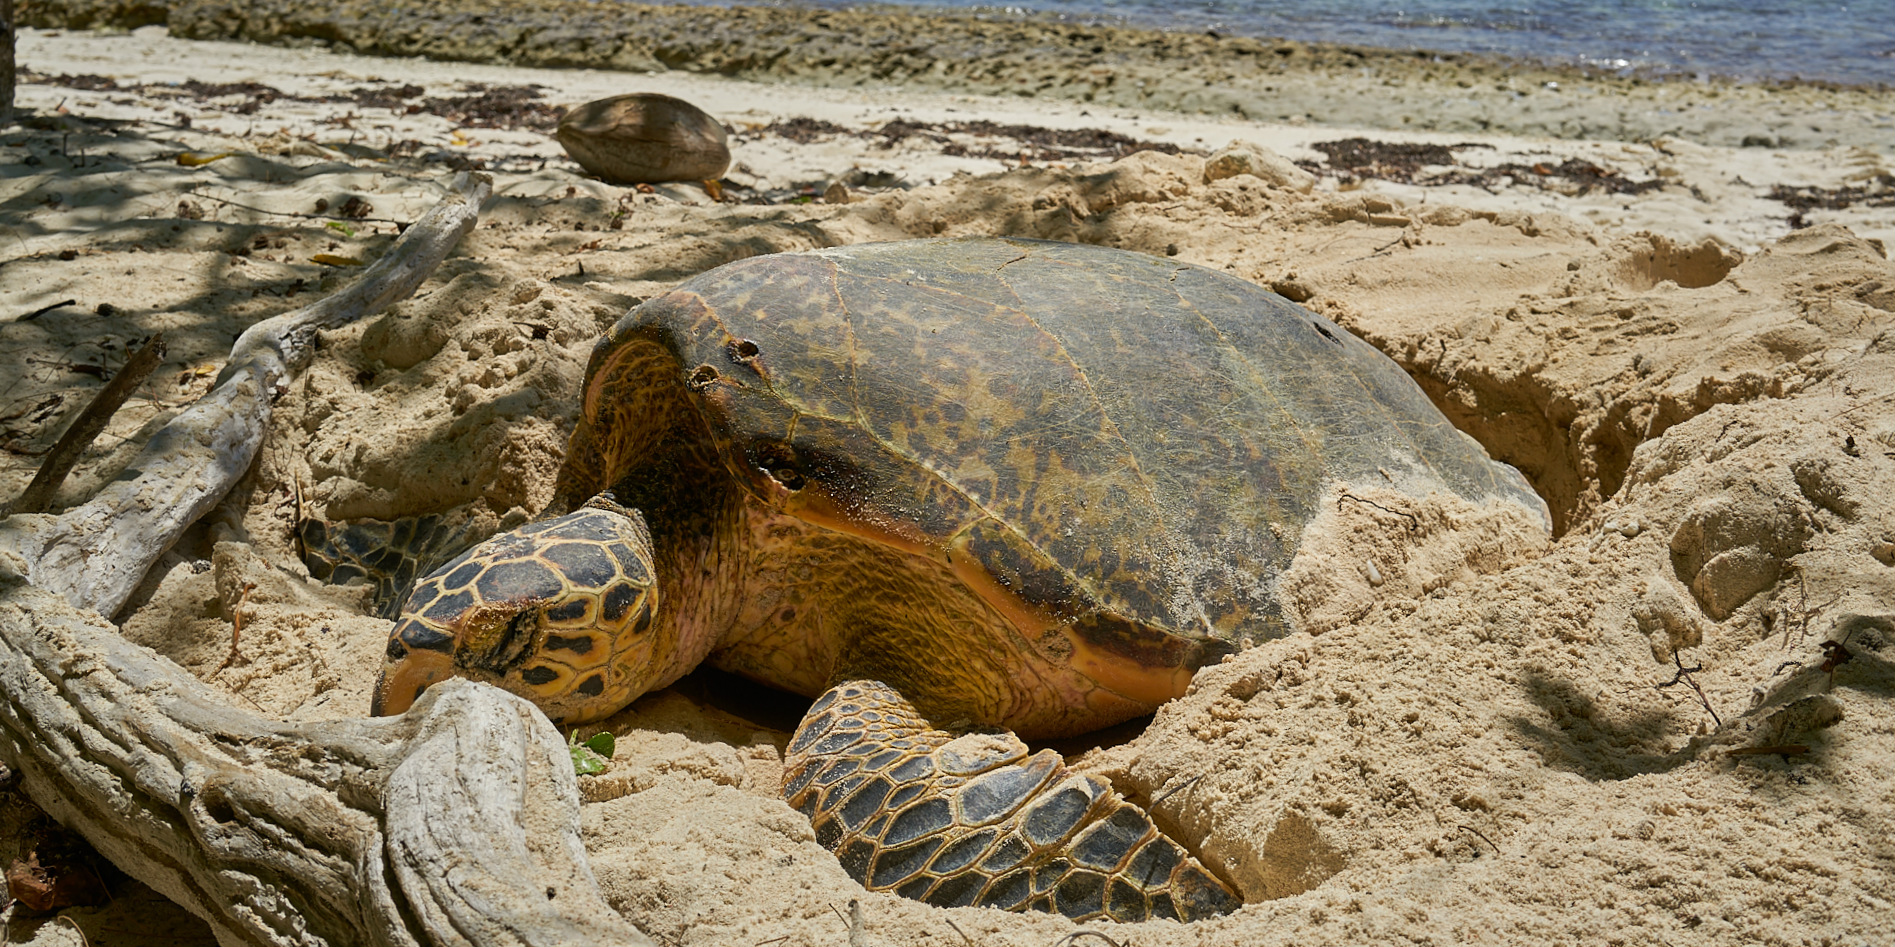 A Aldabra giant tortoise nests on a beach on Curieuse Island in Seychelles. Working to preserve these endangered turtles is one of the top volunteer abroad programs.